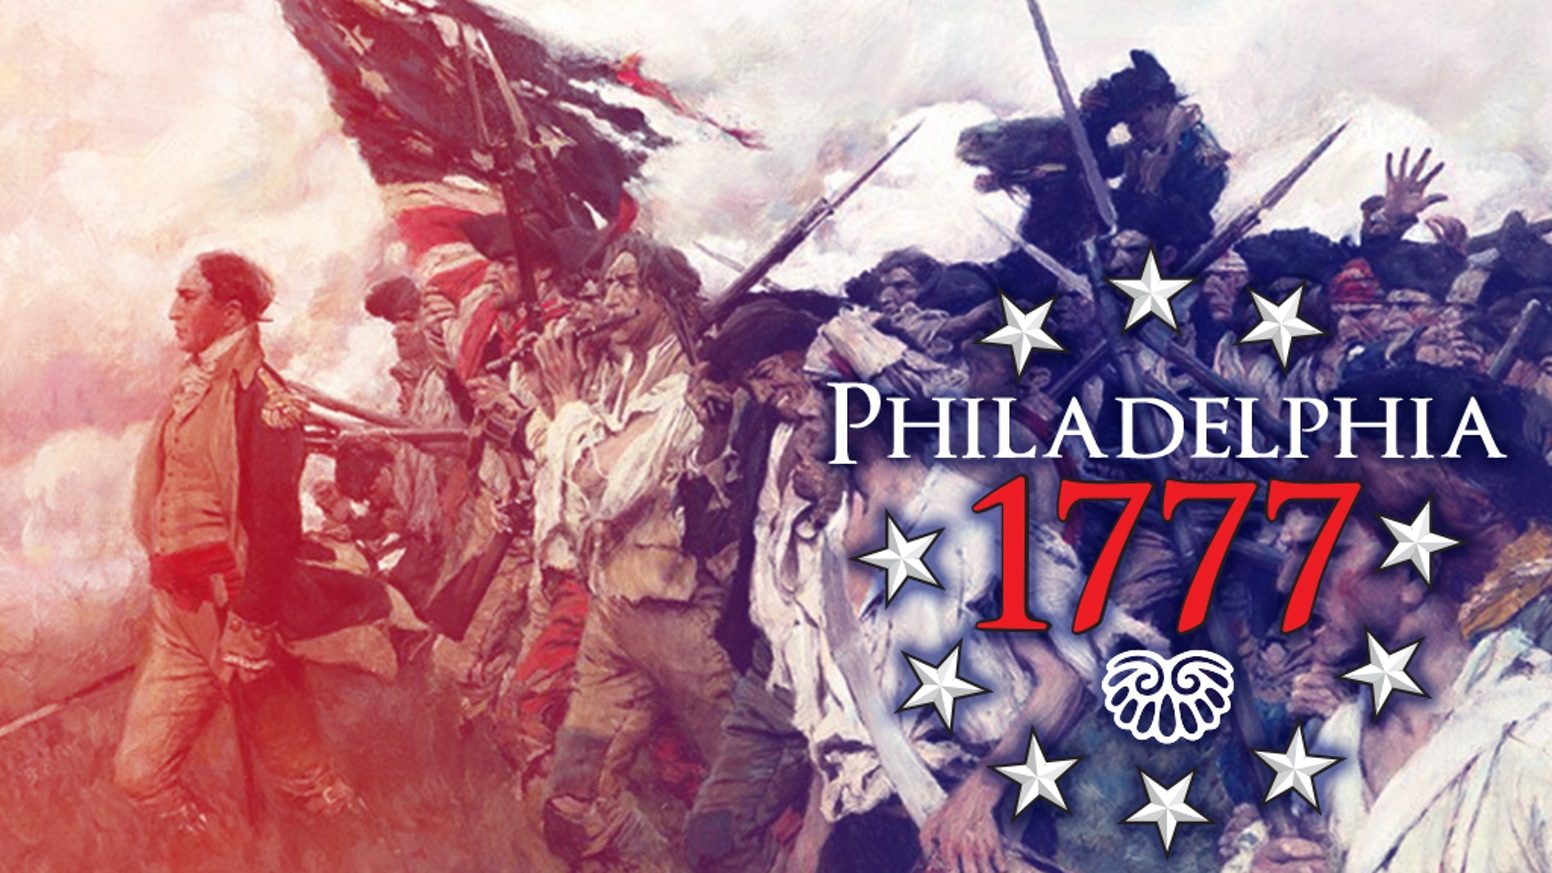 Volume IV in the Campaigns of the American Revolution series.  Can the British take Philadelphia?  Can you as Washington stop them?